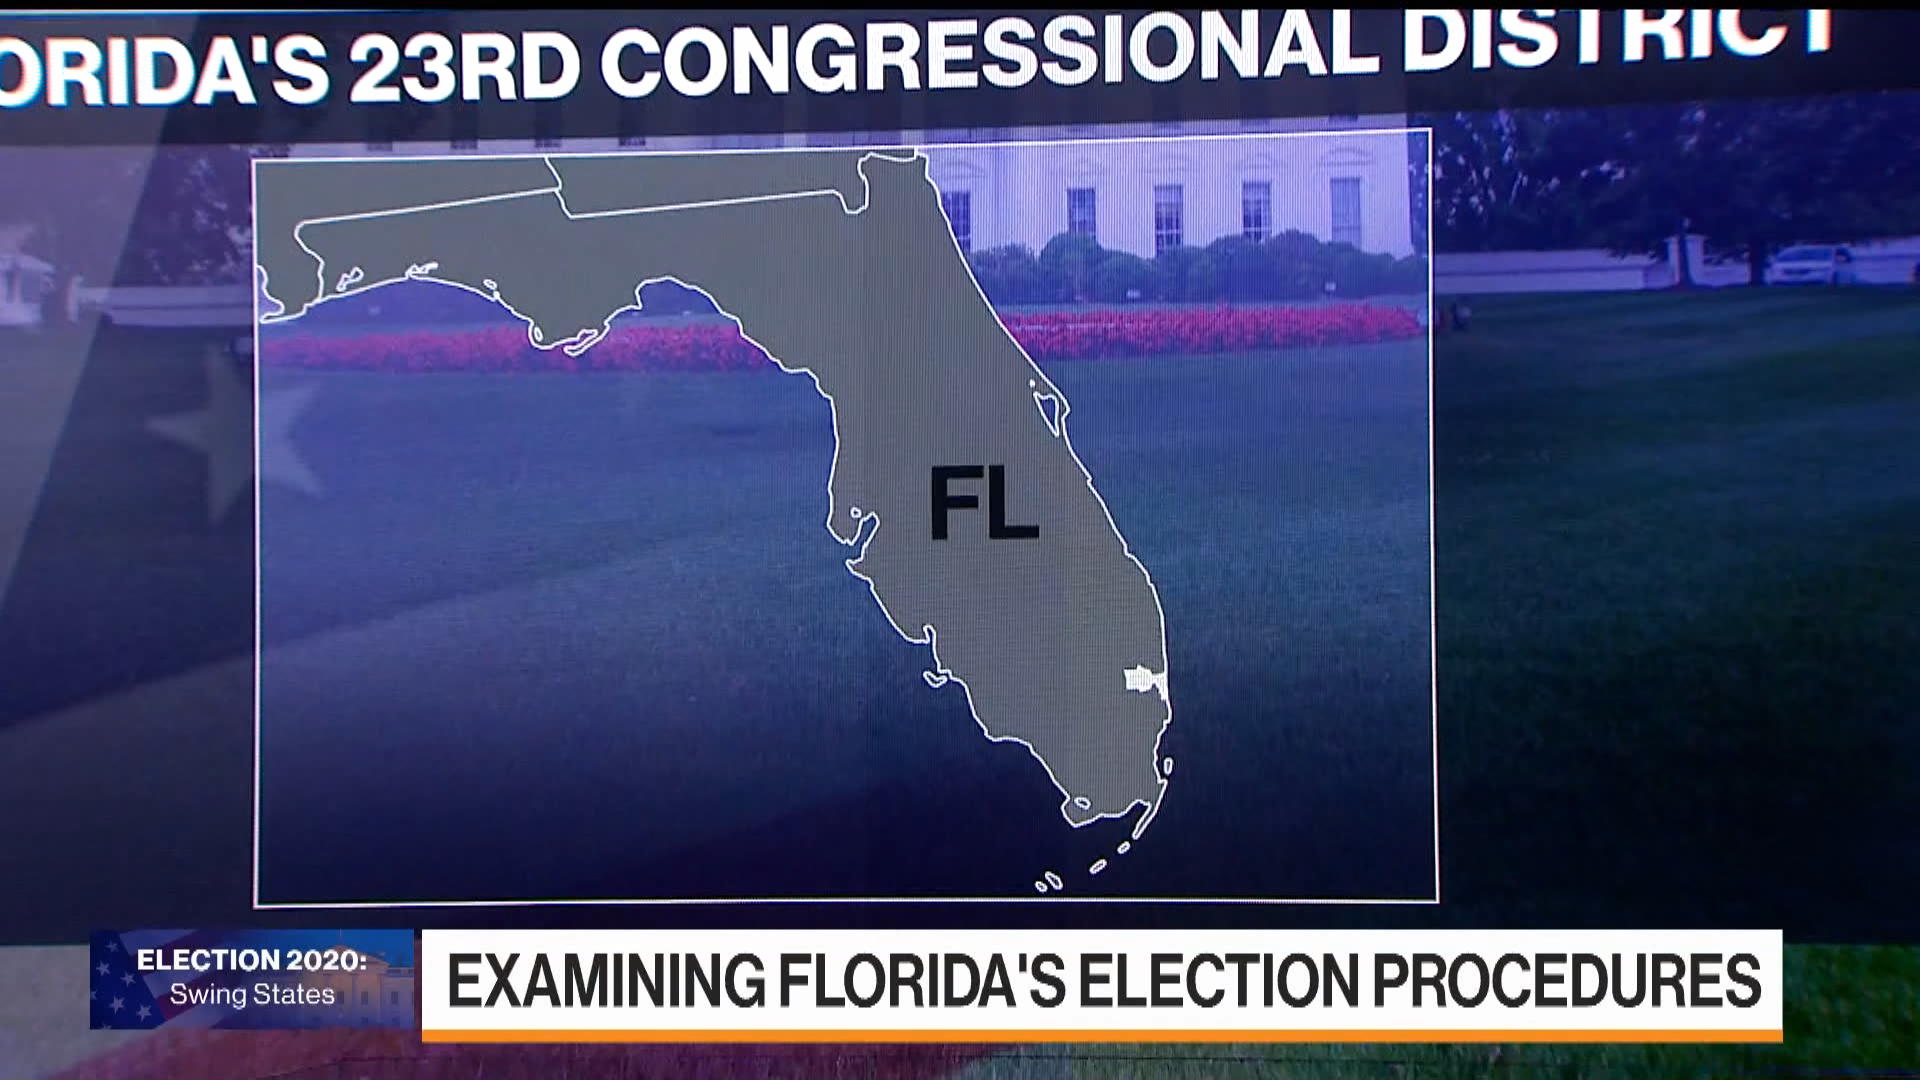 'Everyday Is Election Day' in Florida Says Rep. Wasserman Schultz